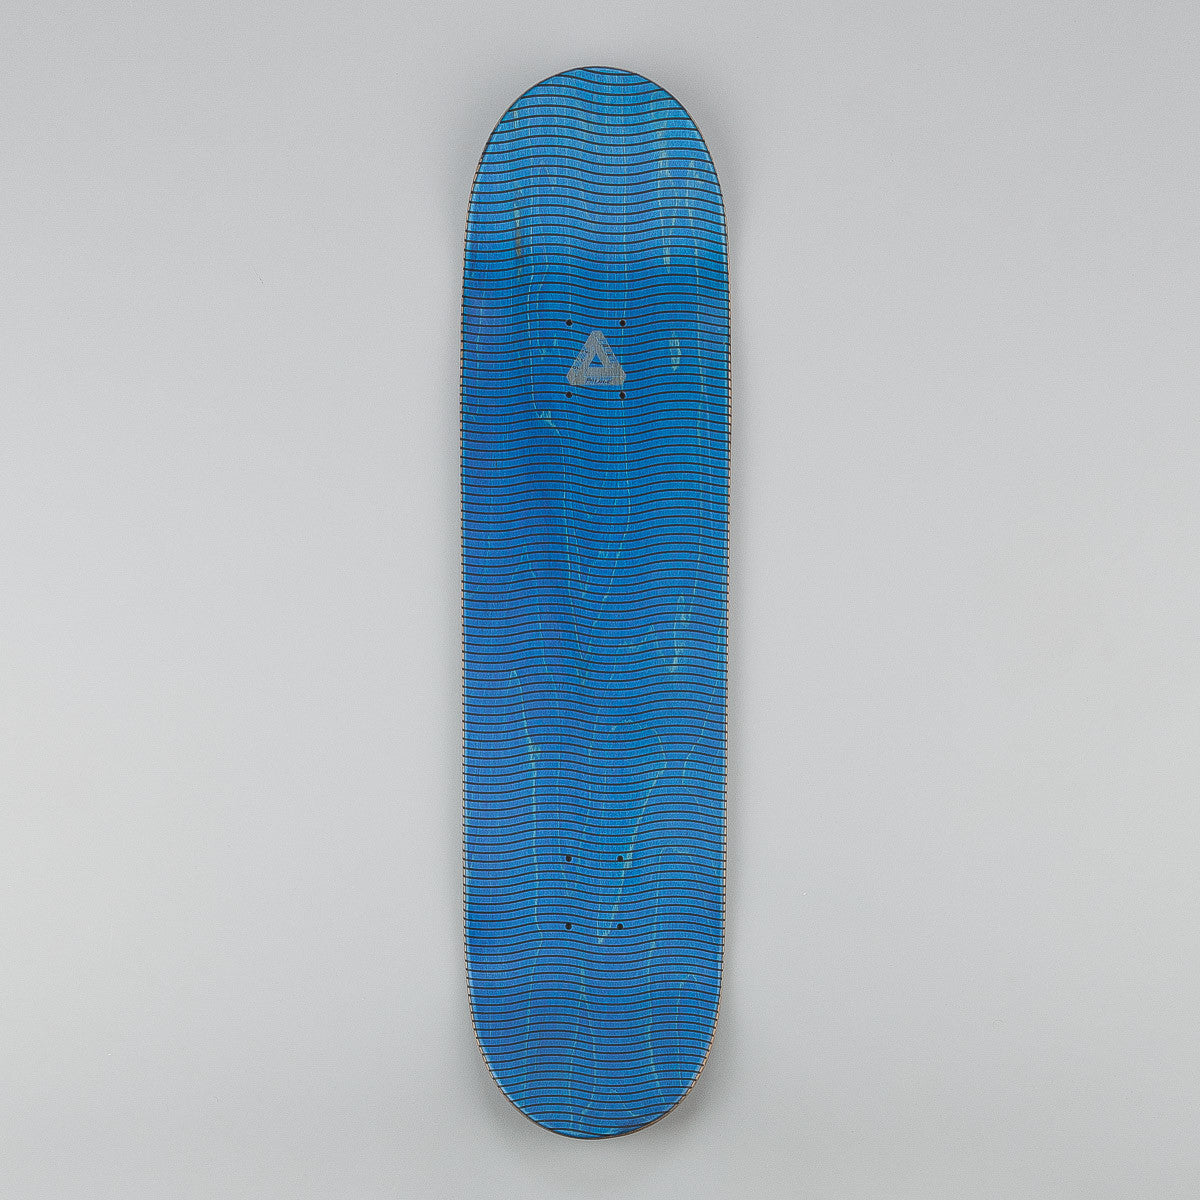 Palace Trippy Stick Black Deck - 8.2""